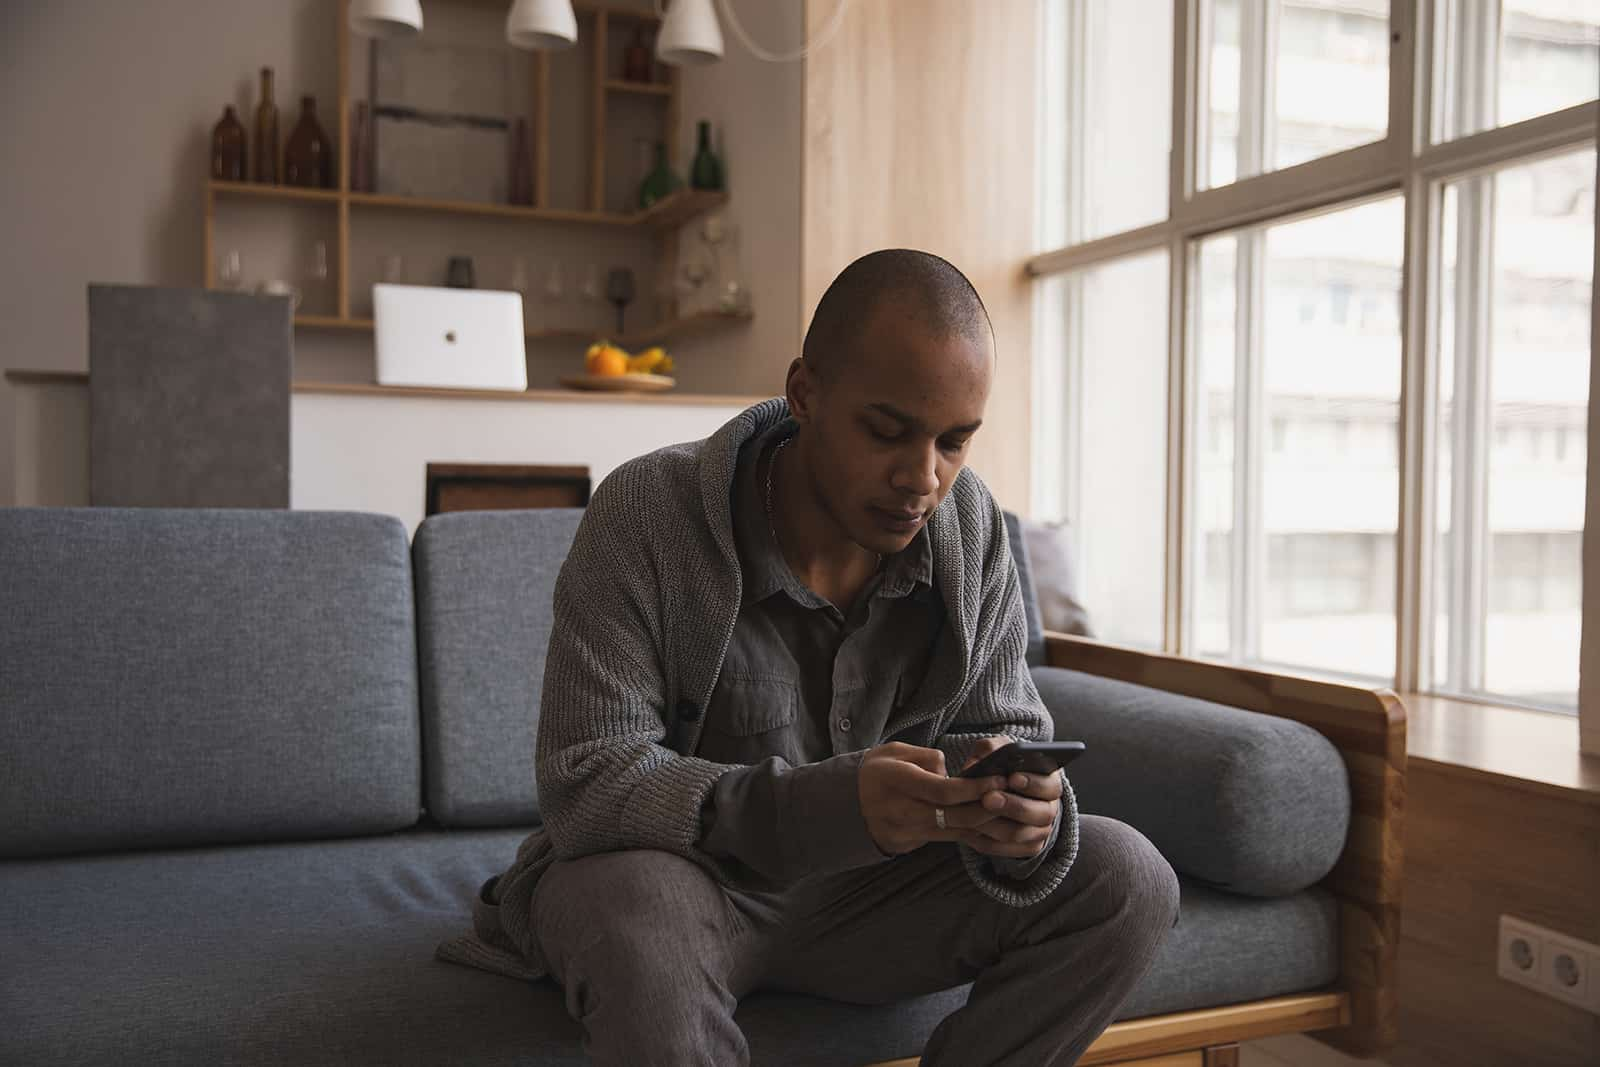 man typing on his smartphone while sitting on the couch at home